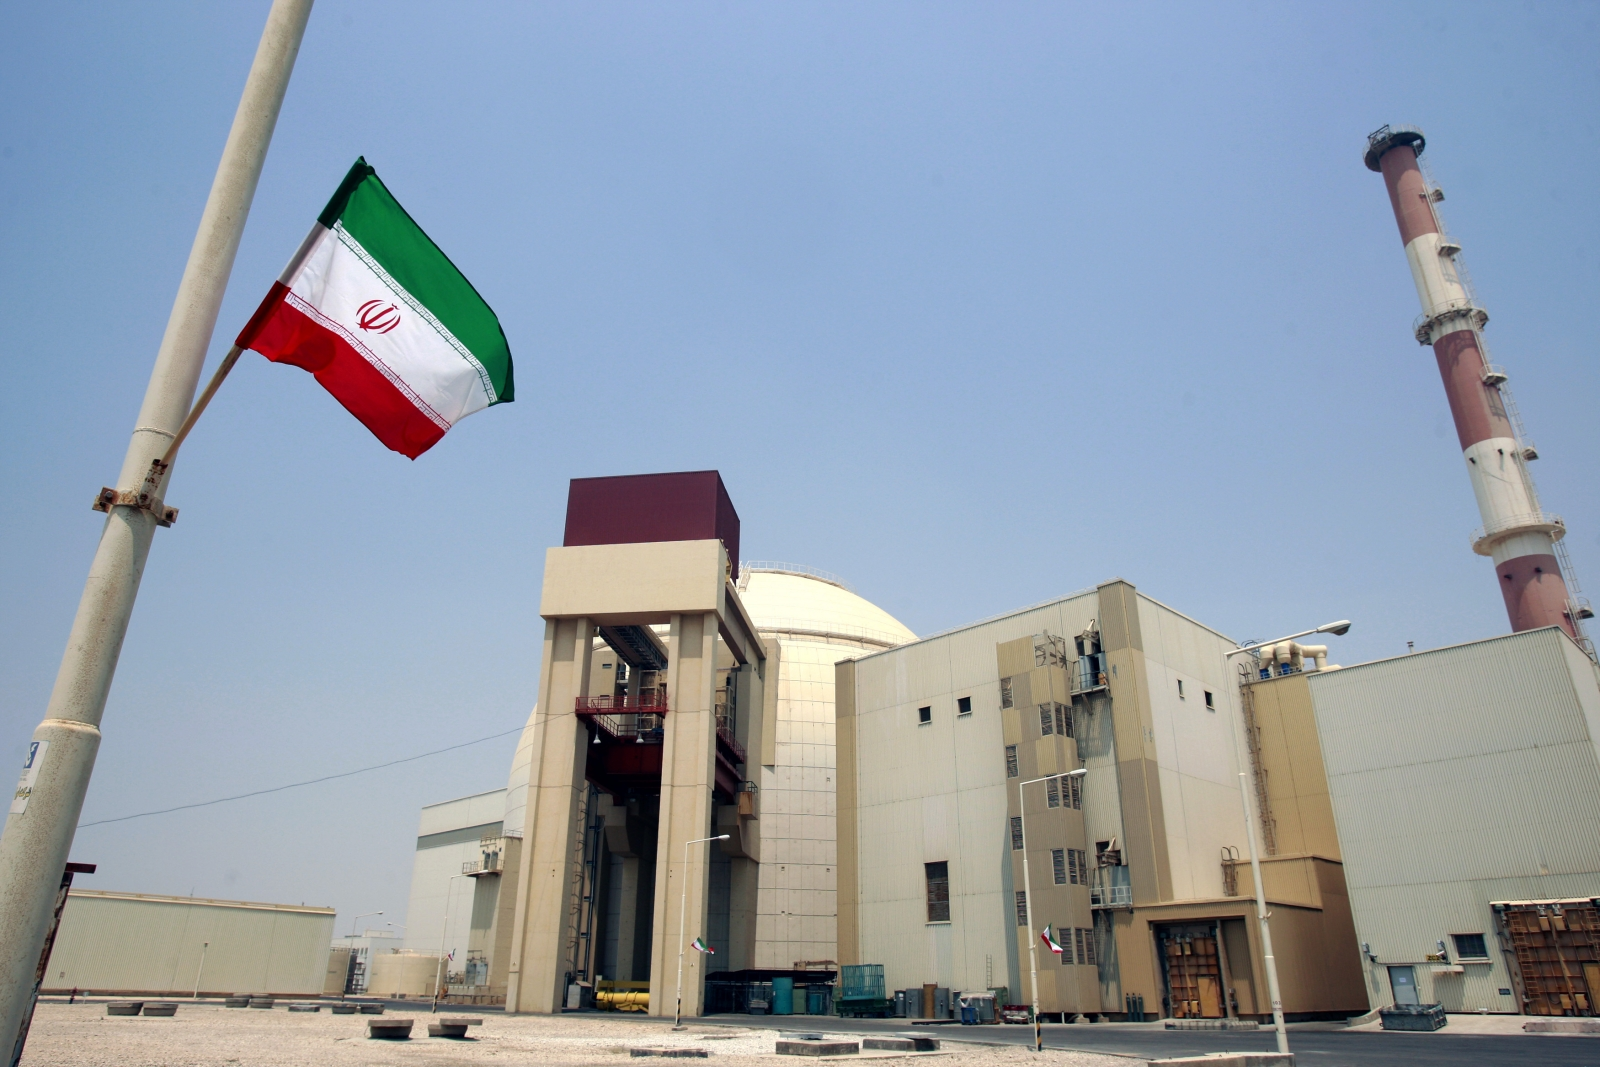 https://d.ibtimes.co.uk/en/full/1545155/bushehr-nuclear-power-plant-iran.jpg